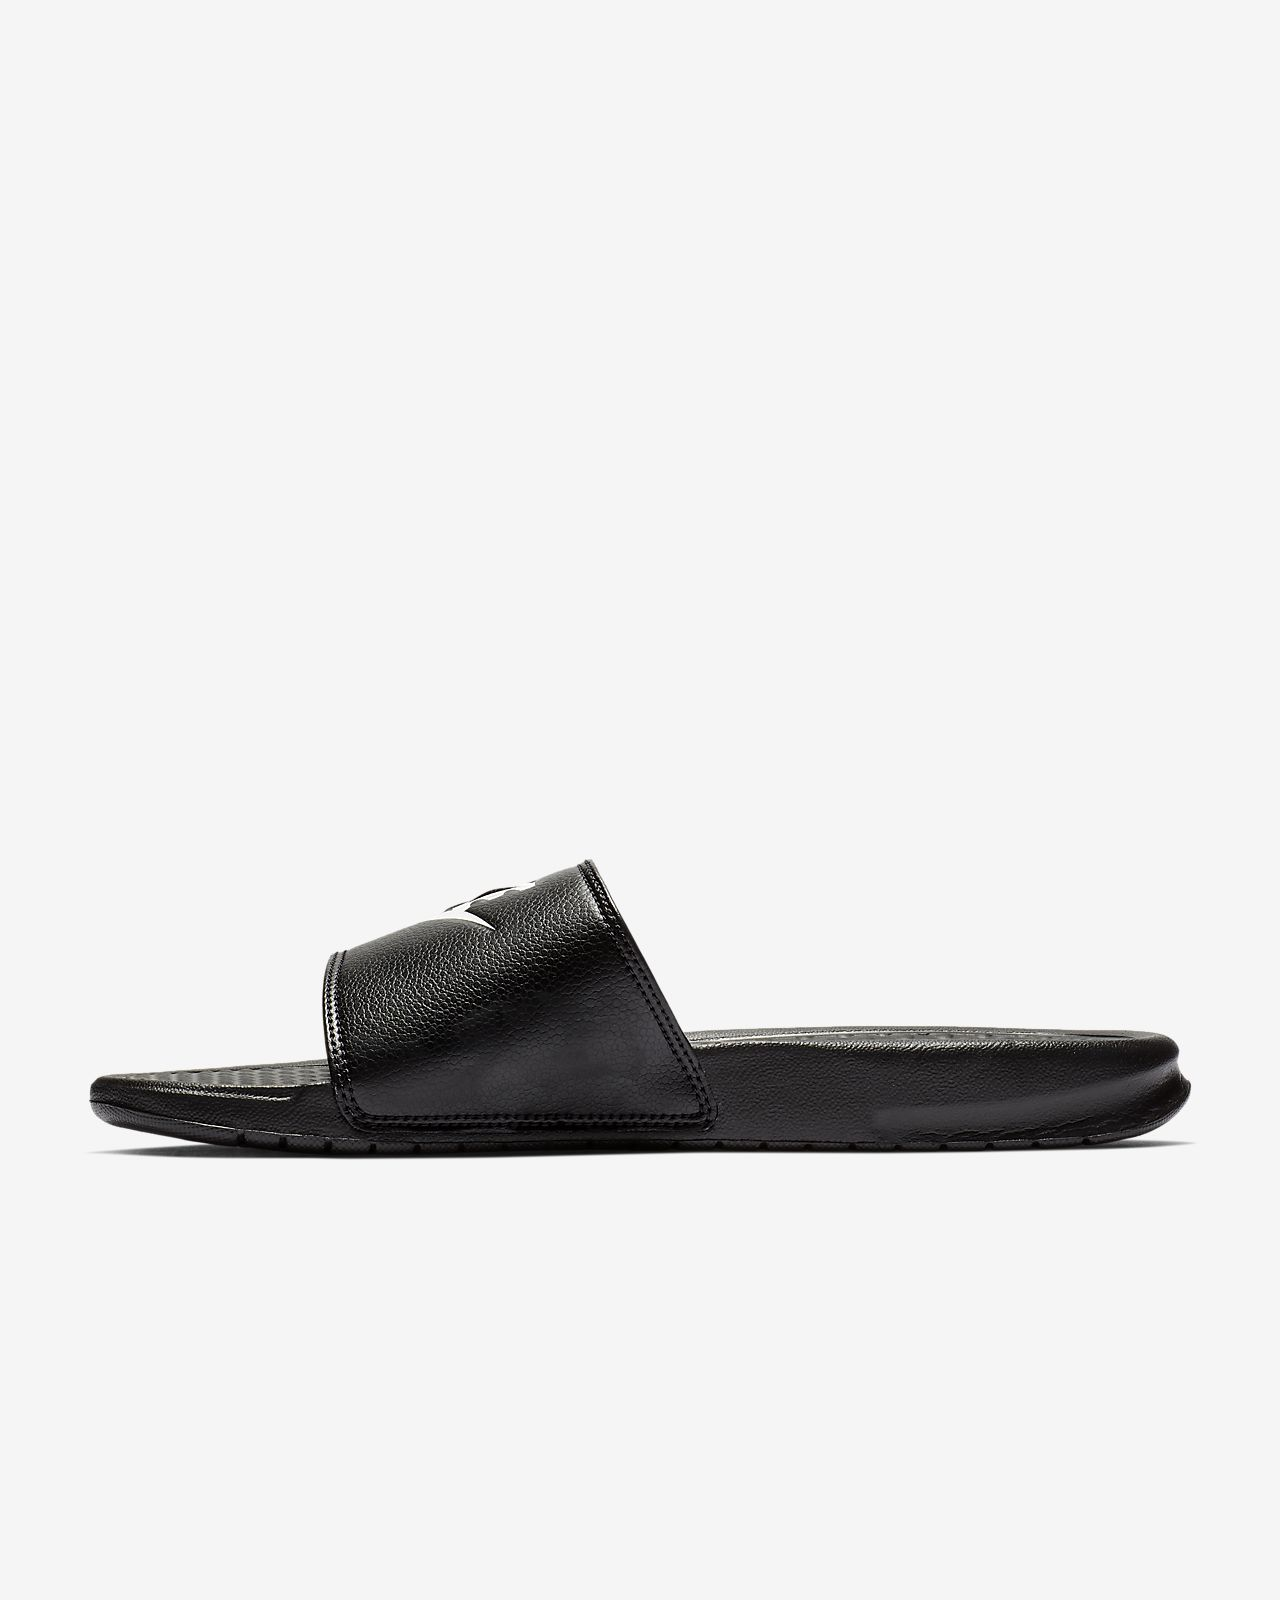 0115947fb80c Low Resolution Nike Benassi Slide Nike Benassi Slide